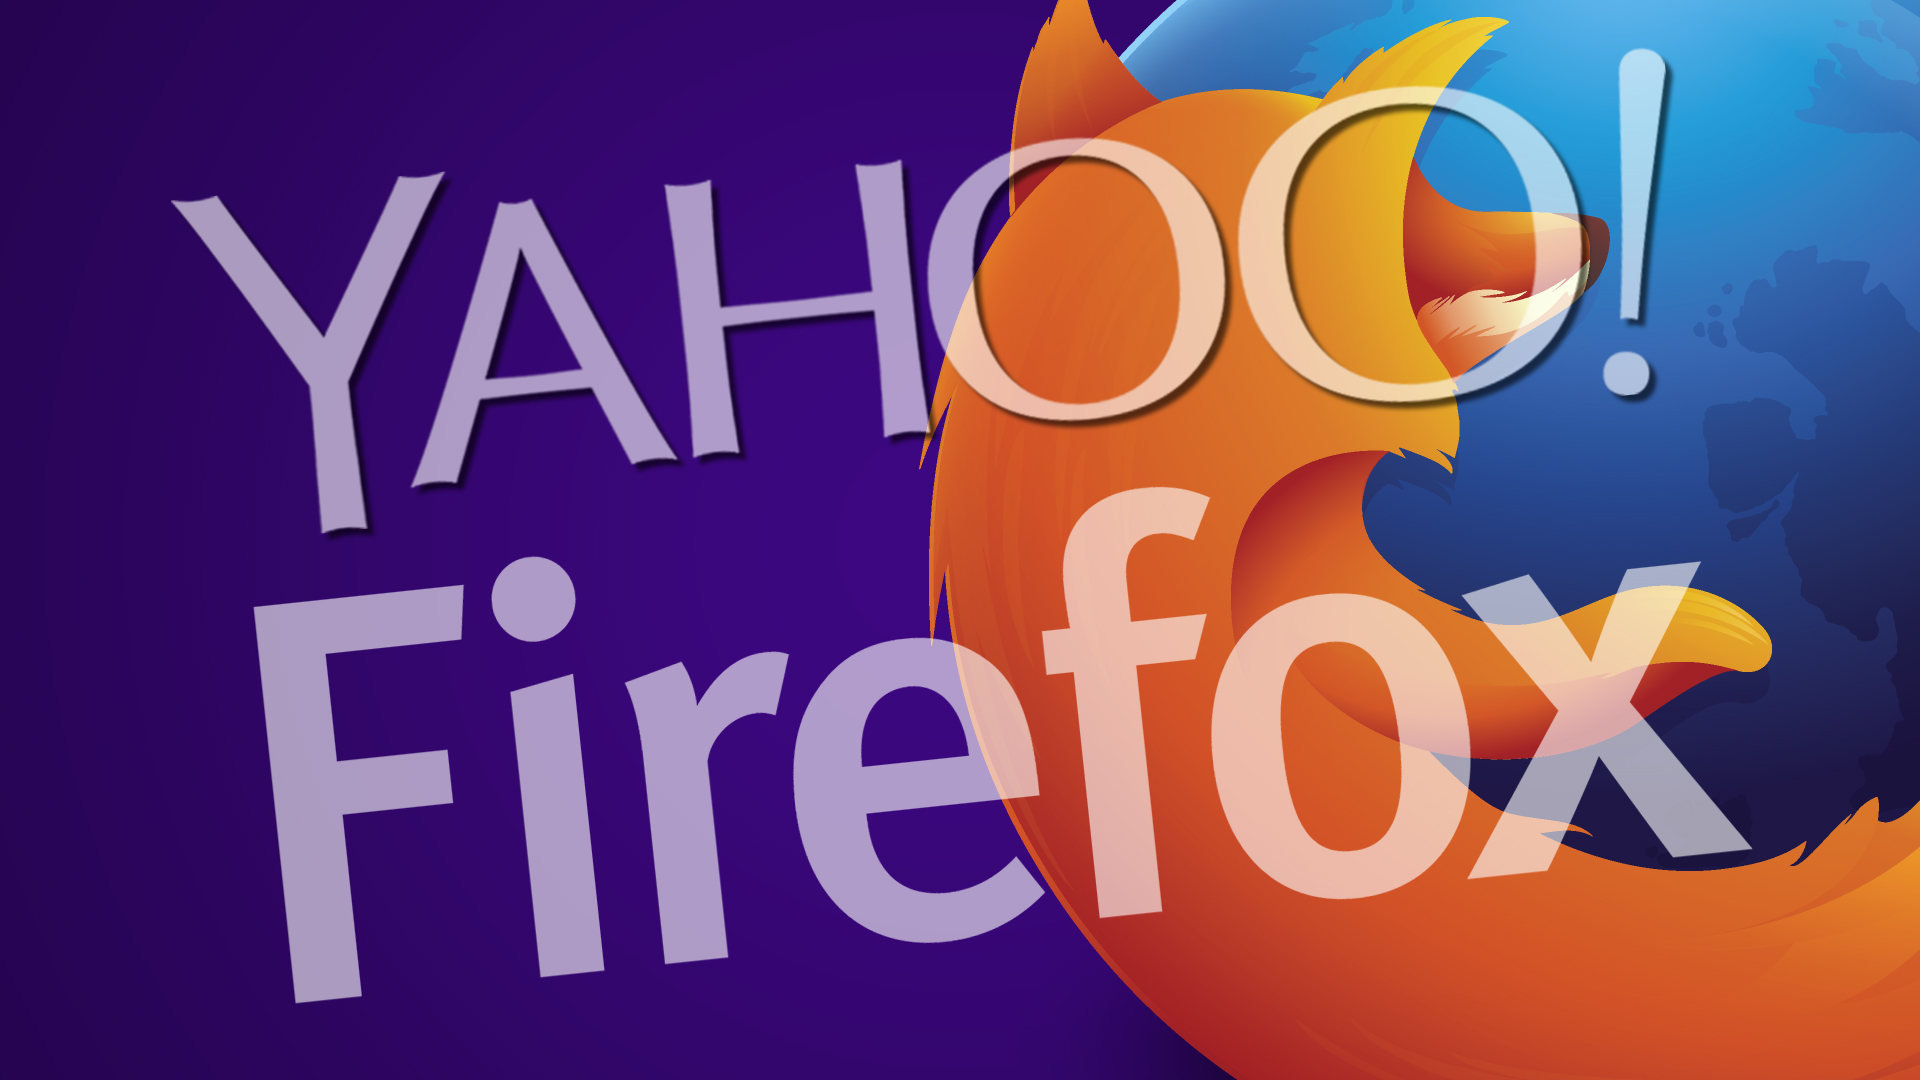 That was fast! Yahoo has now taken over from Google officially in Firefox